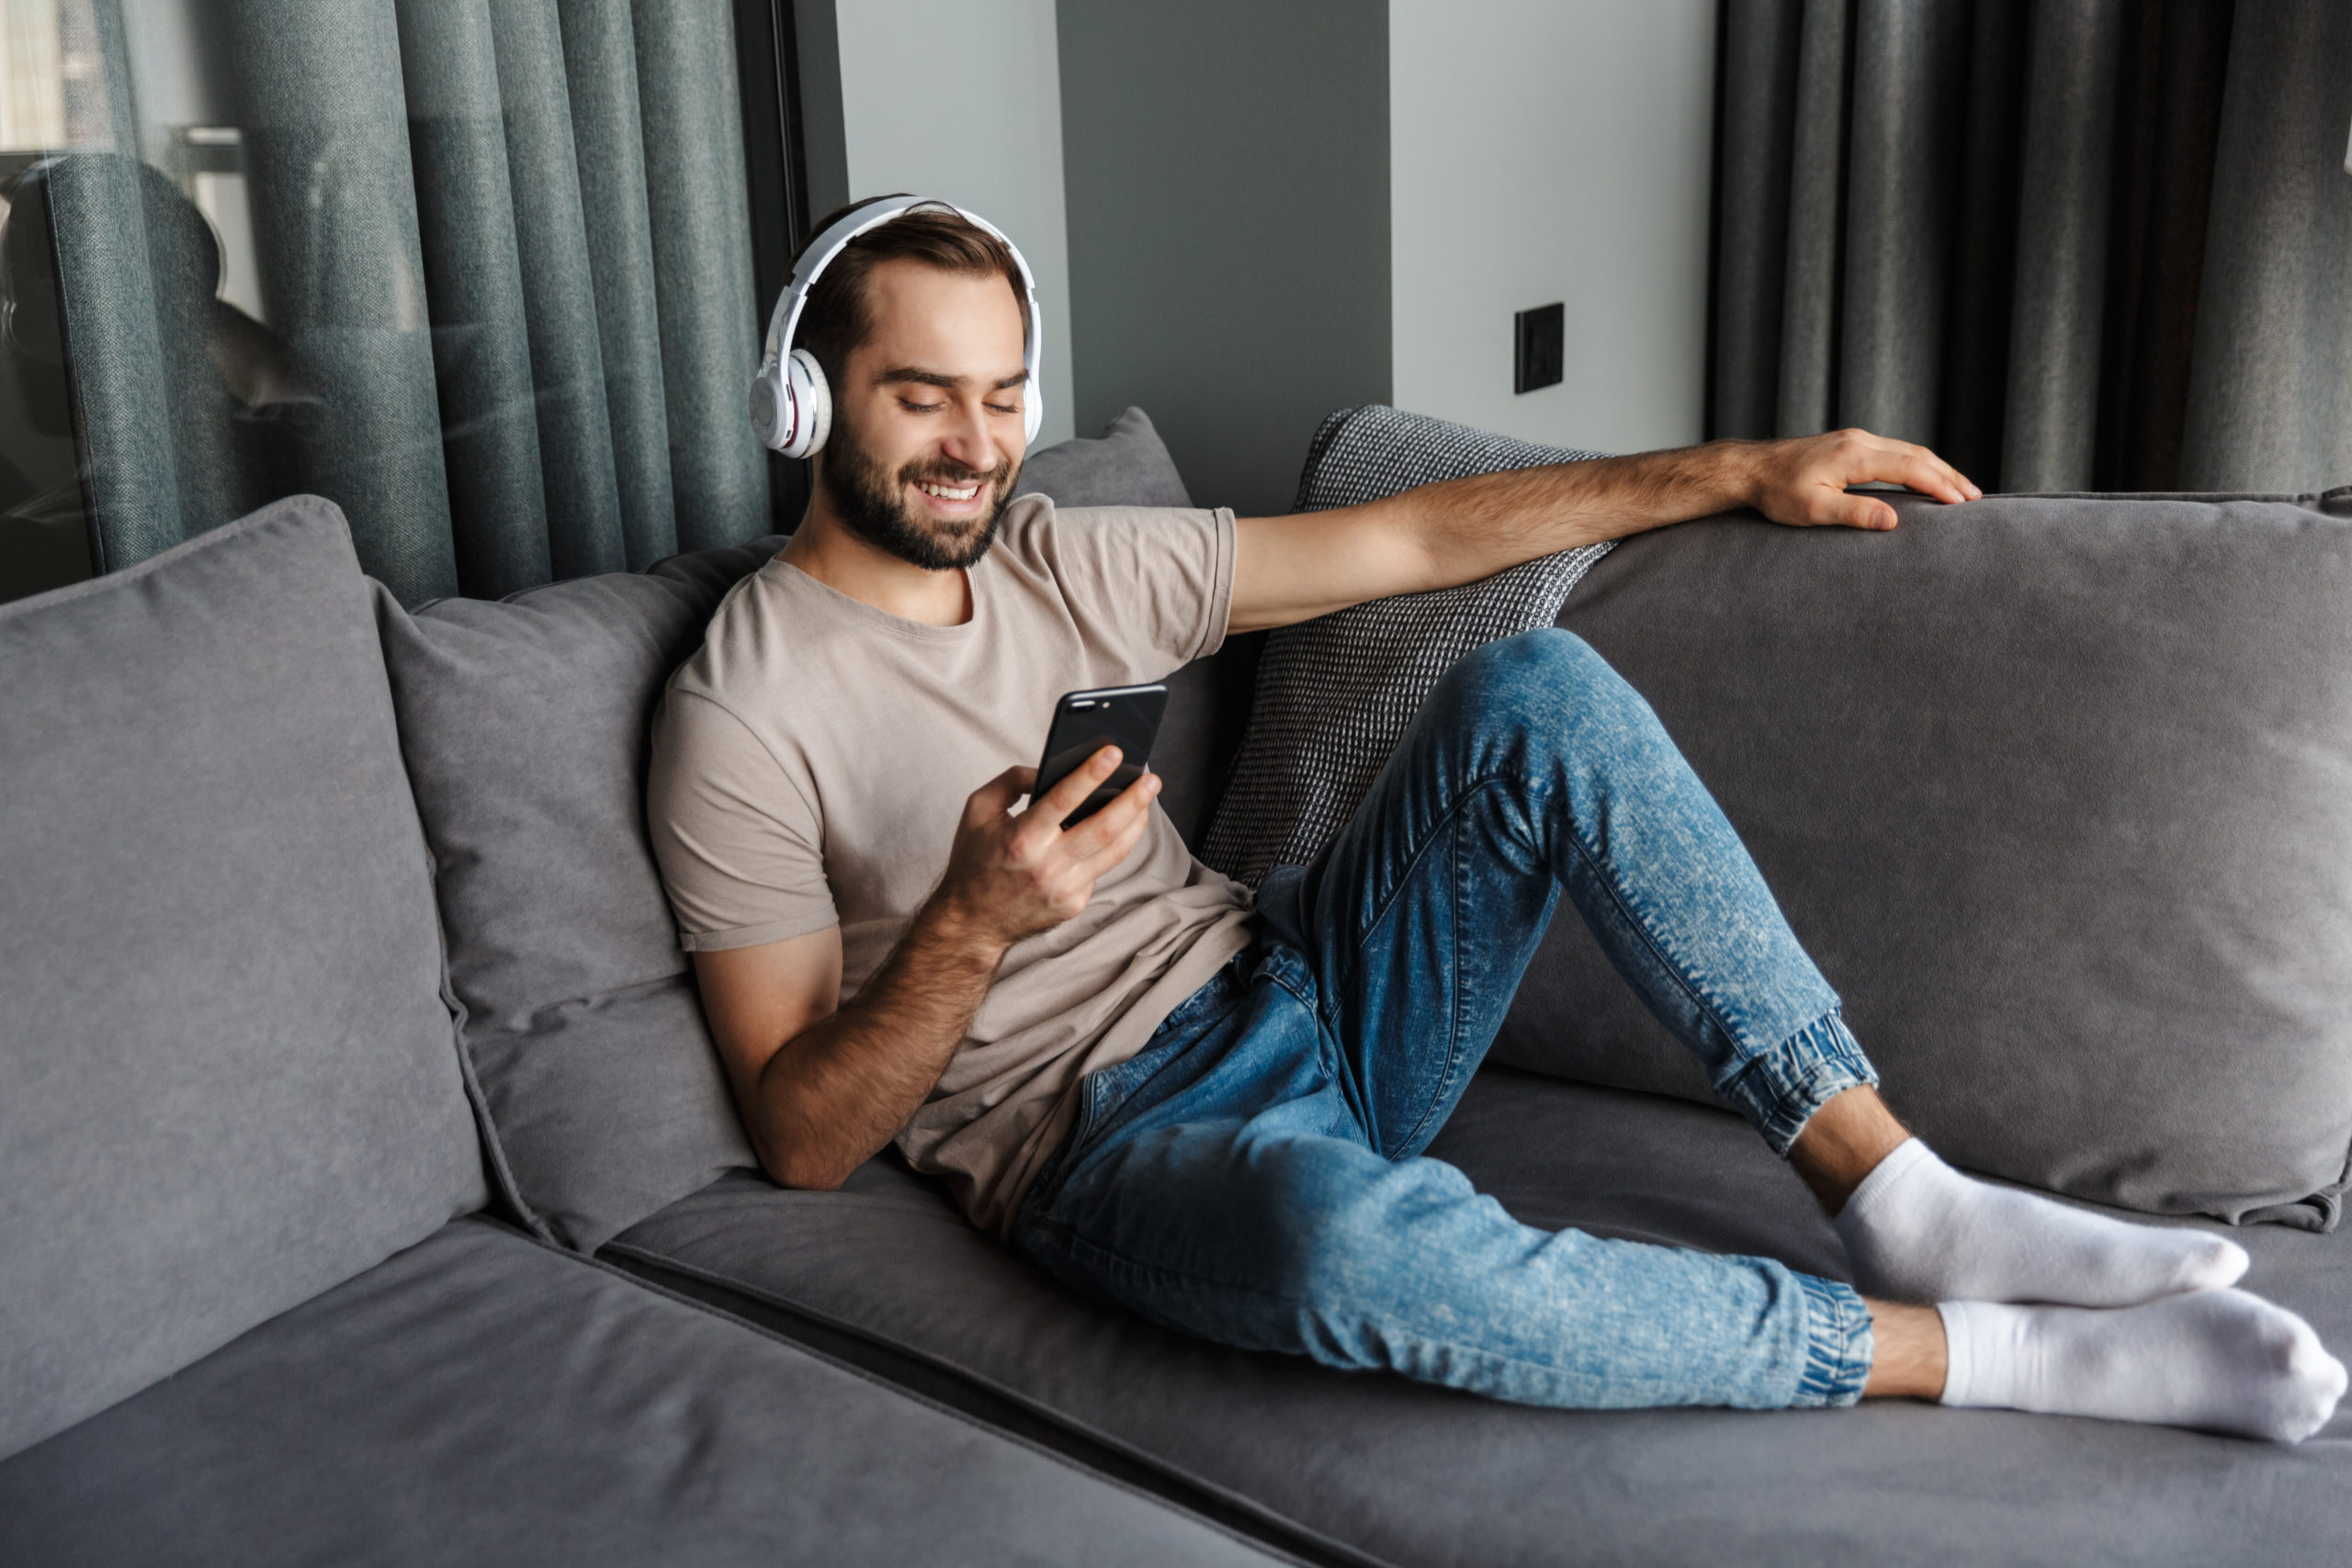 https://elements.envato.com/positive-man-listening-music-with-headphones-L52TLJL